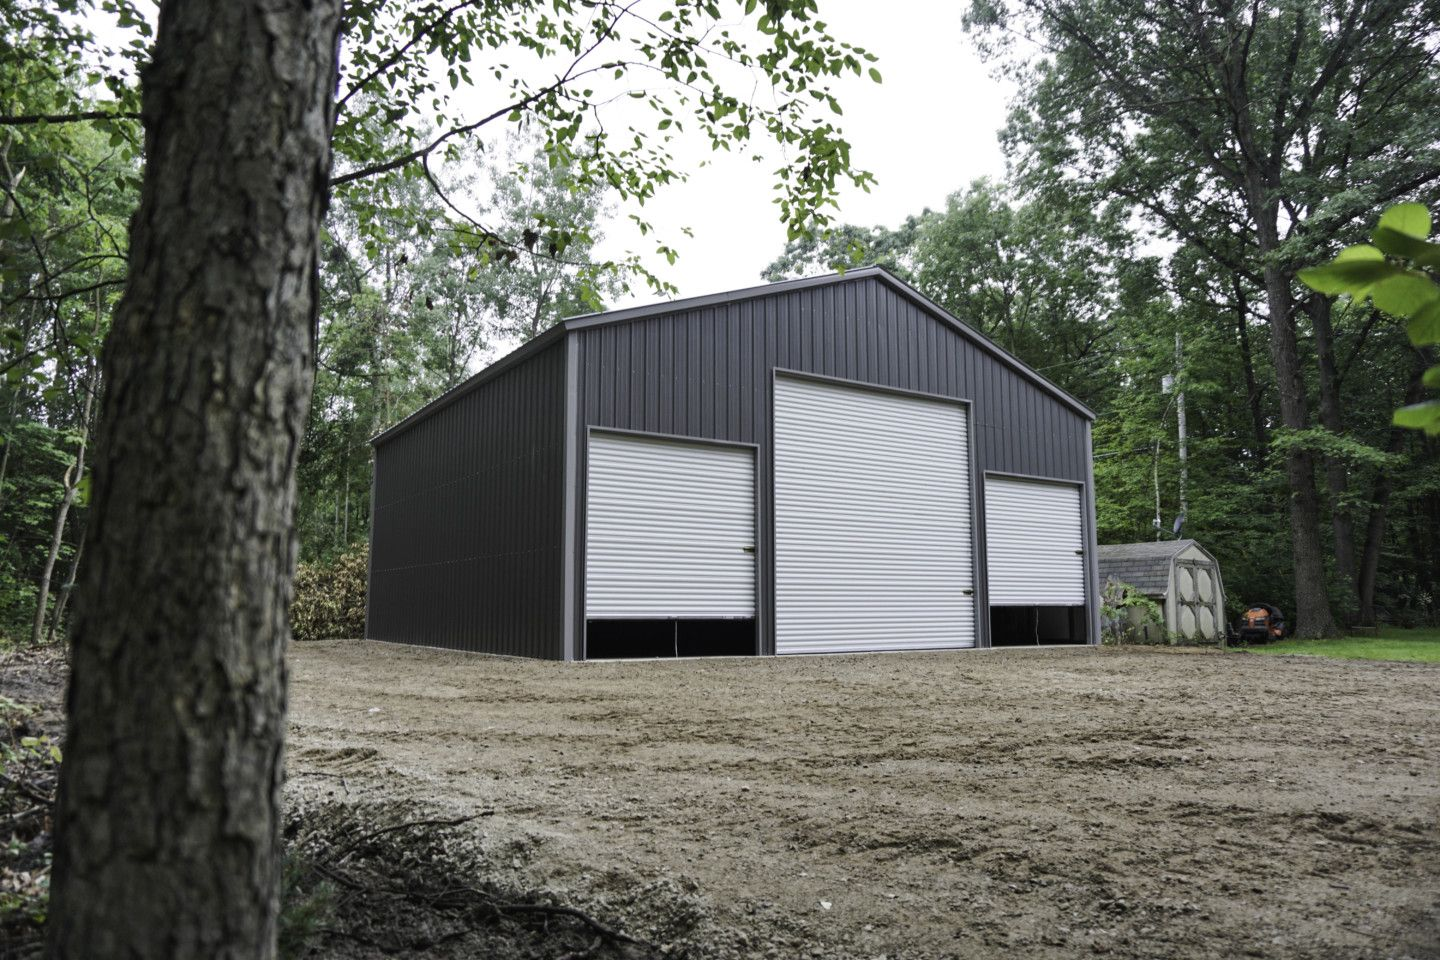 Metal Carports For Sale Midwest Steel Carports Garages More Barn Construction Building A Pole Barn Steel Buildings